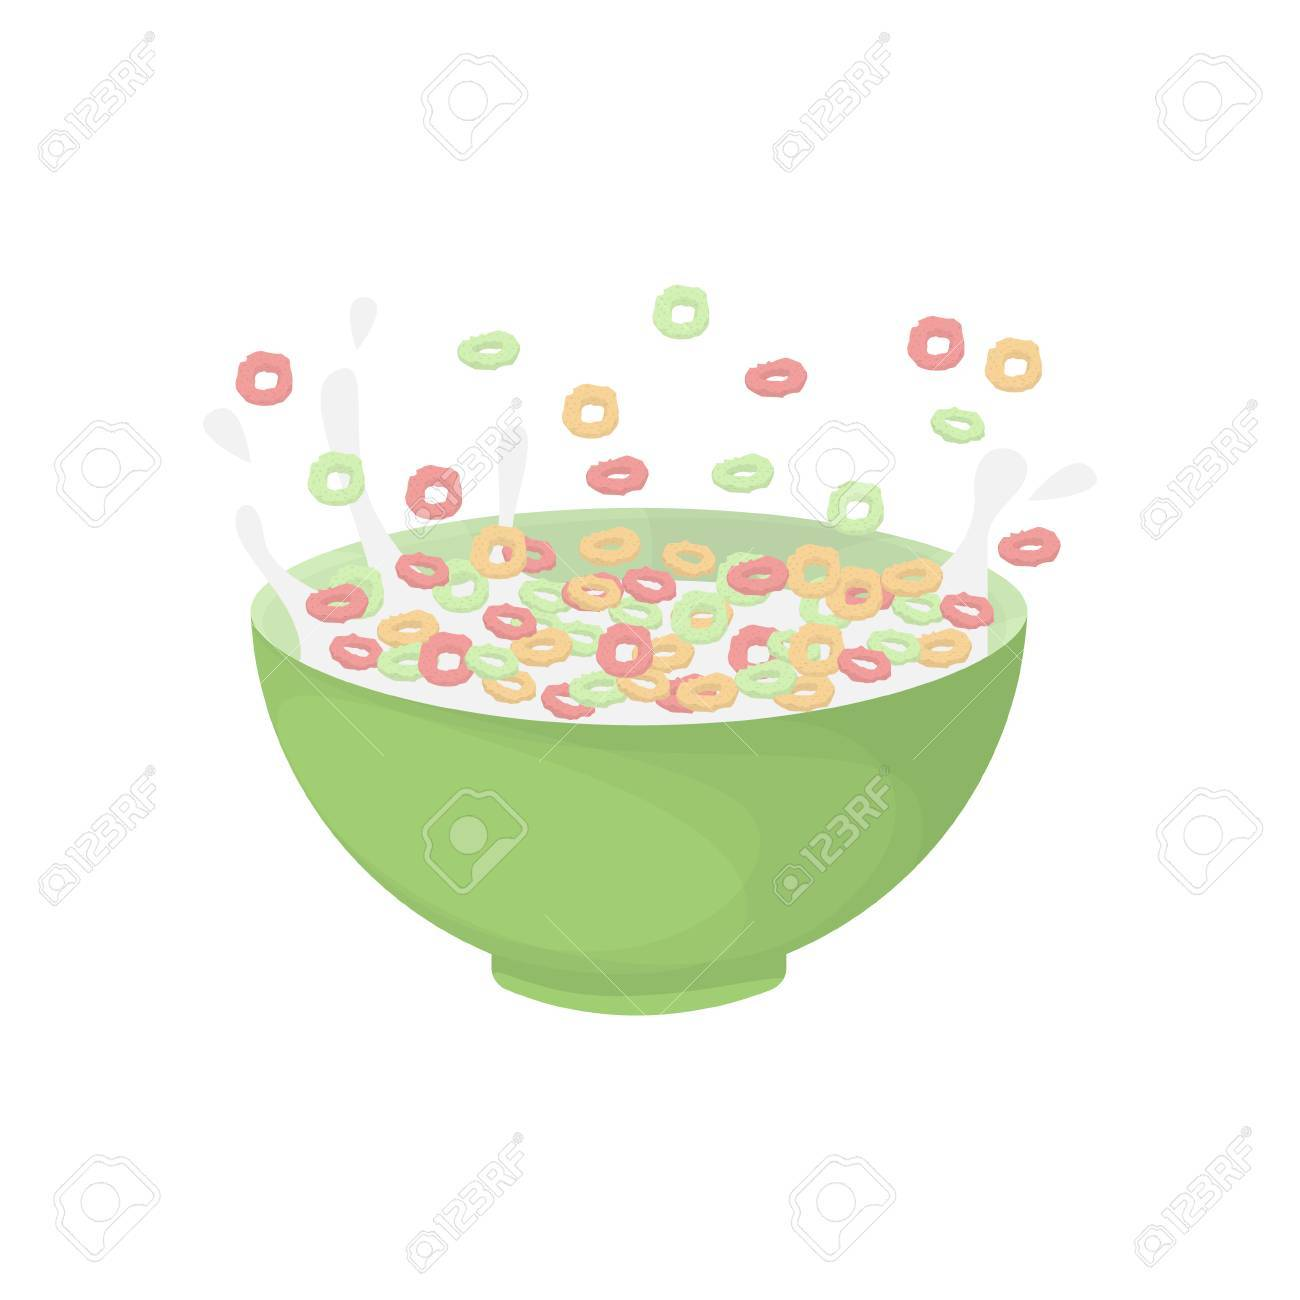 hight resolution of breakfast cereal bowl stock vector 83486192